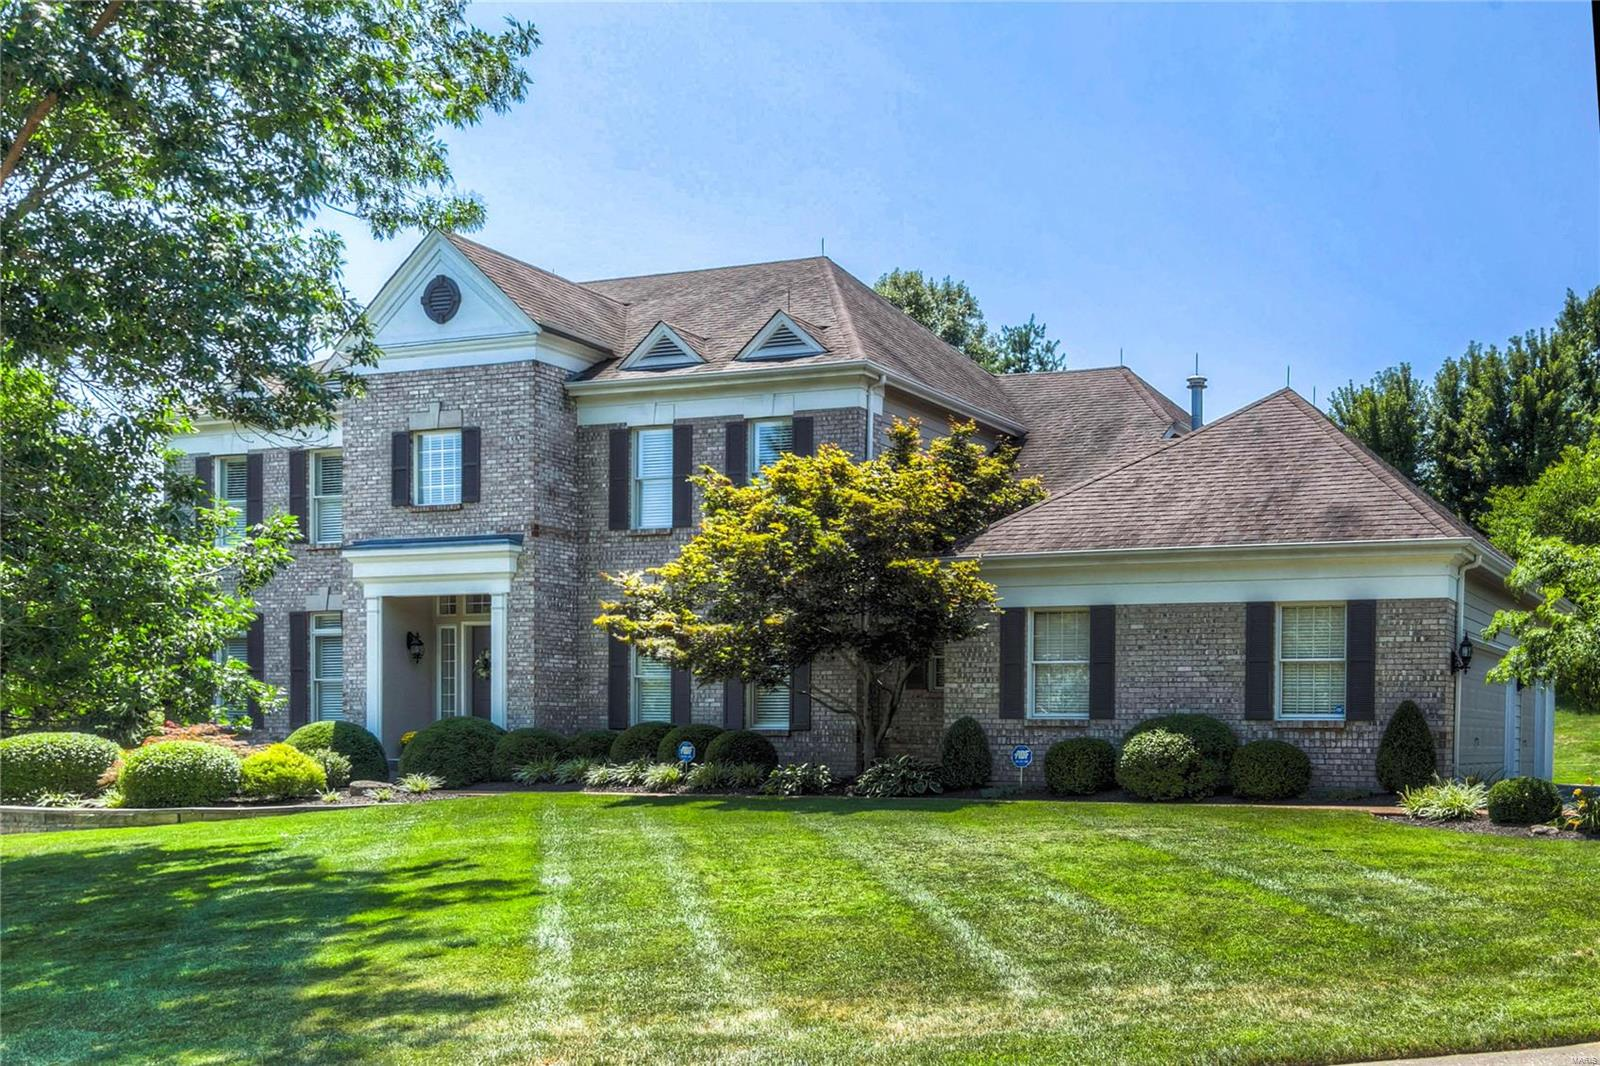 18019 Pine Canyon Court, Wildwood, MO 63005